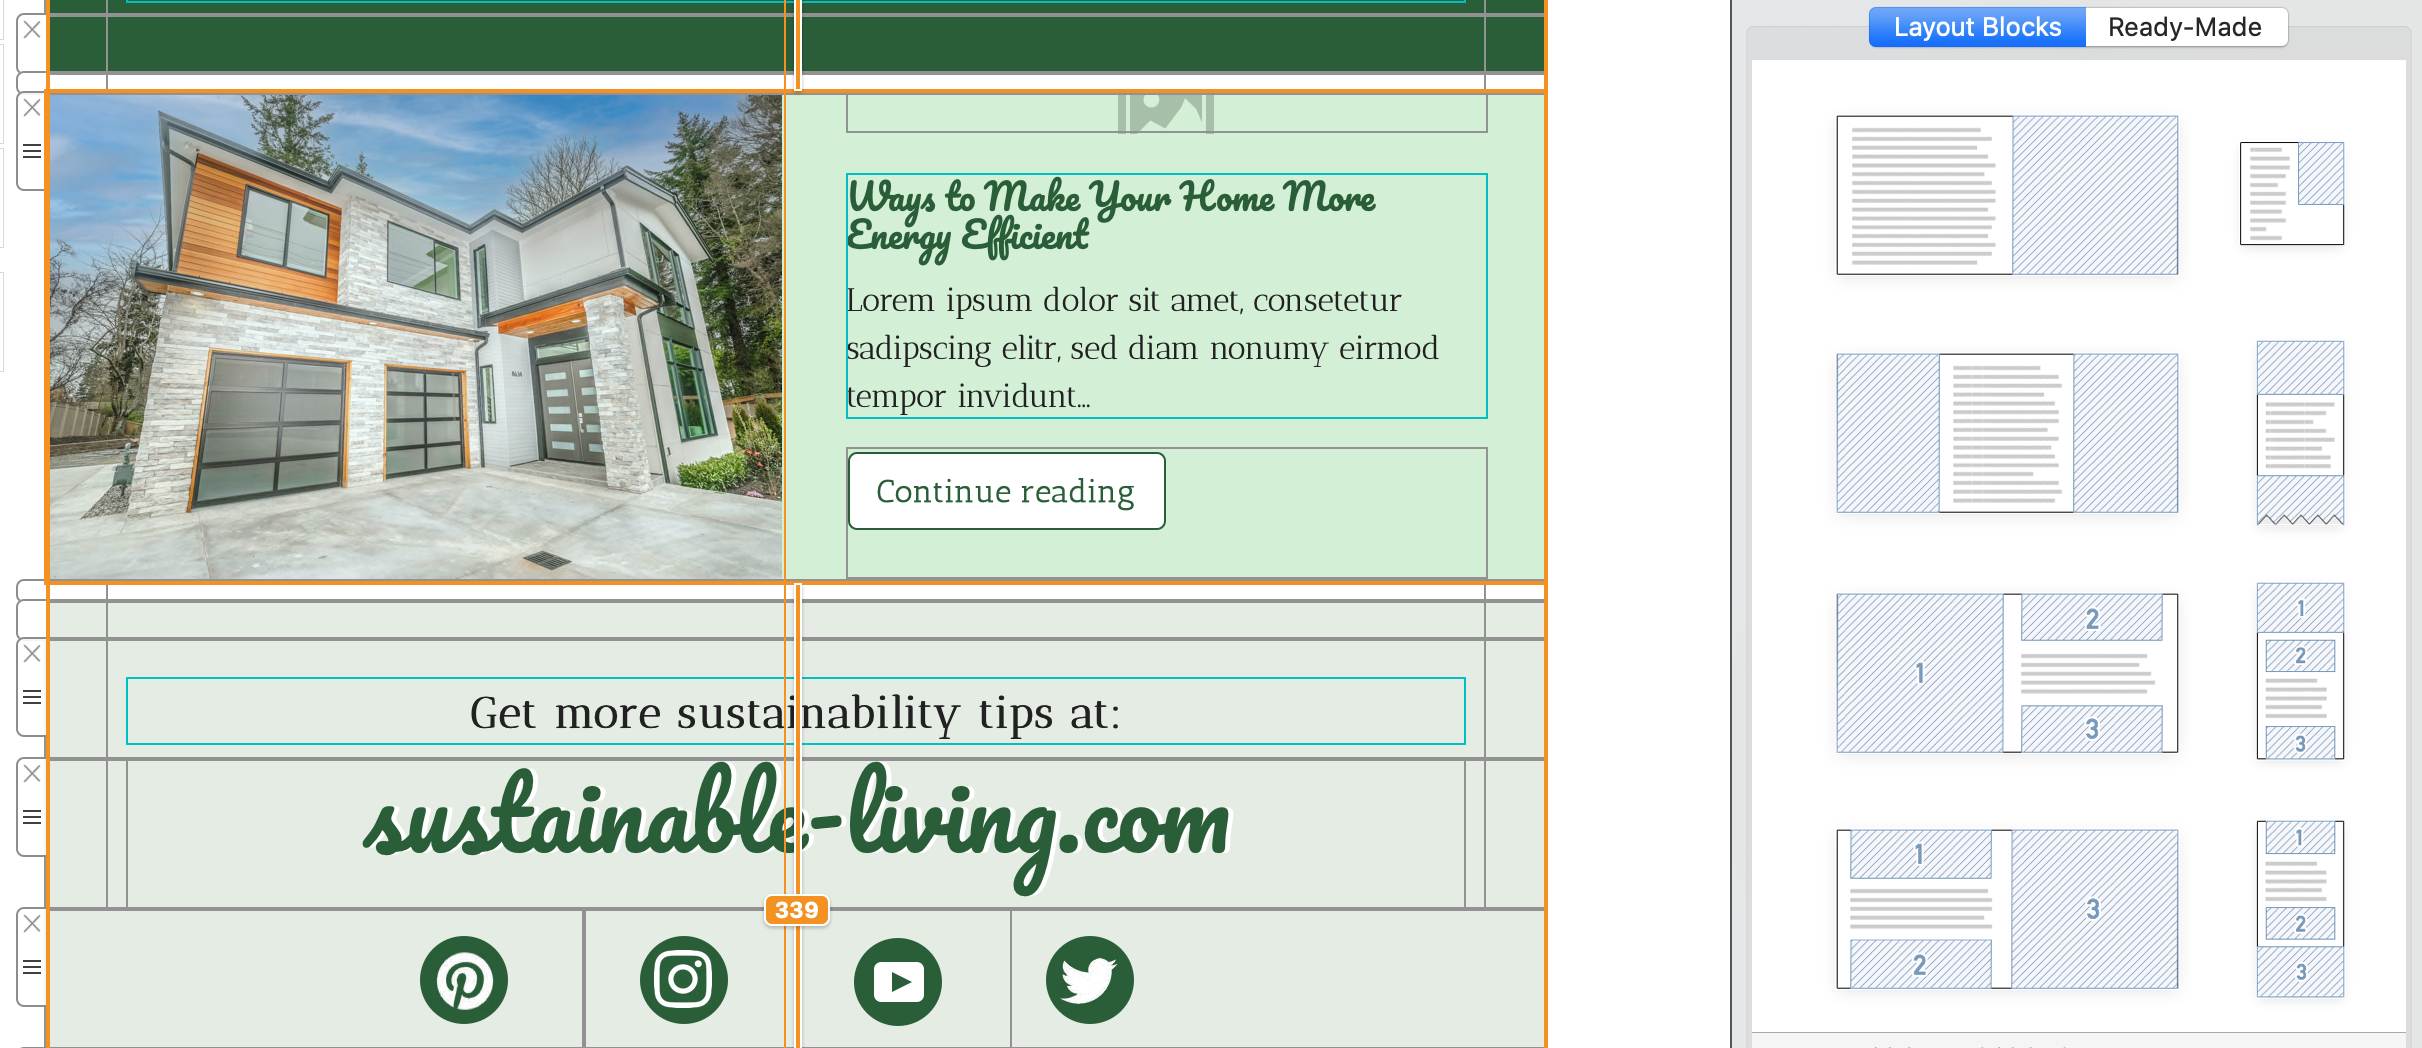 layout options for blog newsletters - in mail designer 365